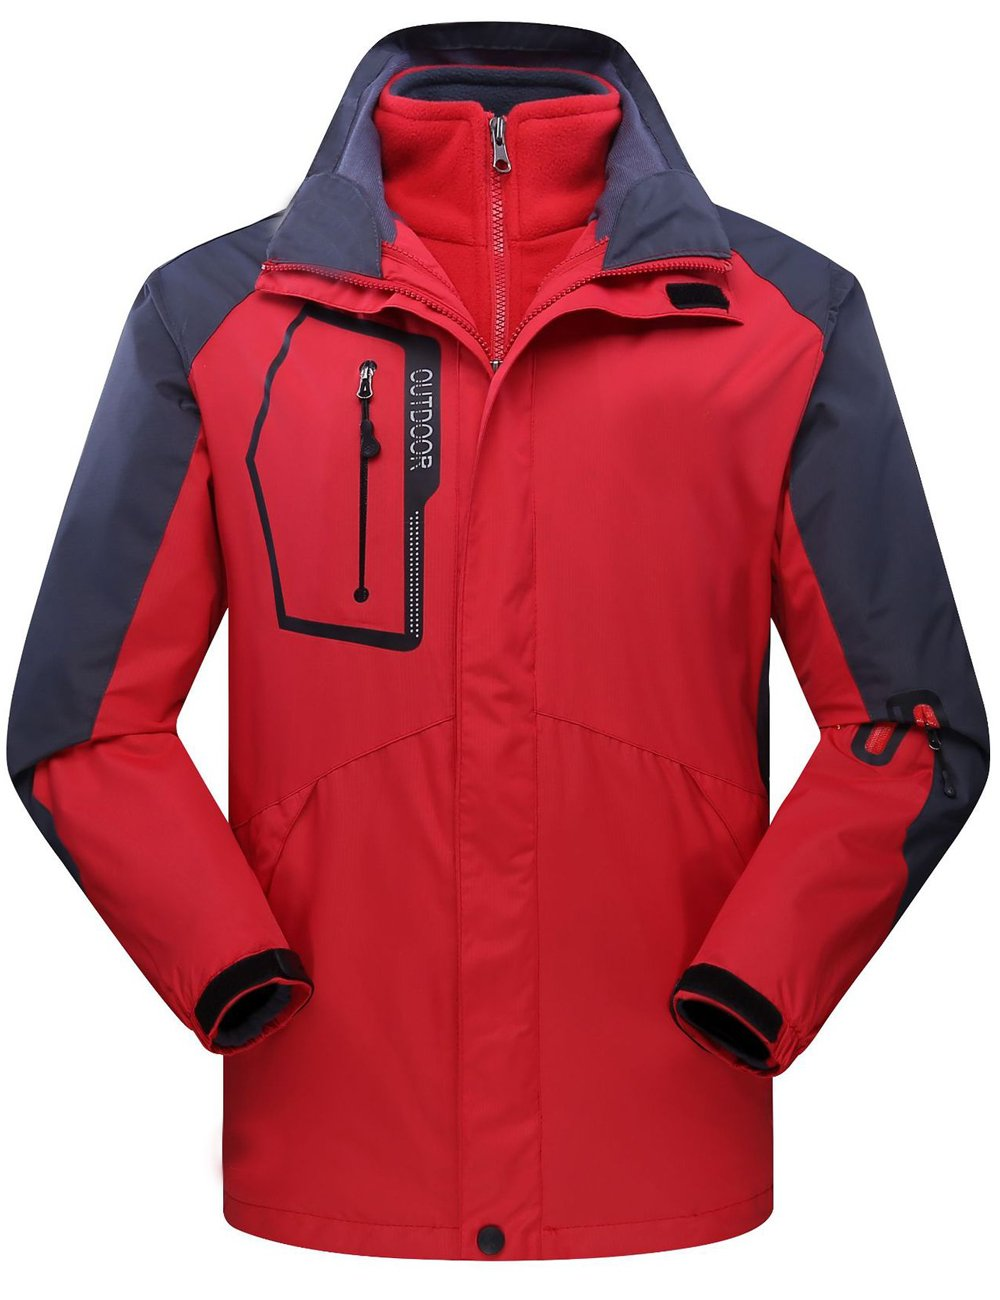 CUKKE OUTERWEAR レディース B077XNZQDN 3L|Red Nvw1201 Red Nvw1201 3L